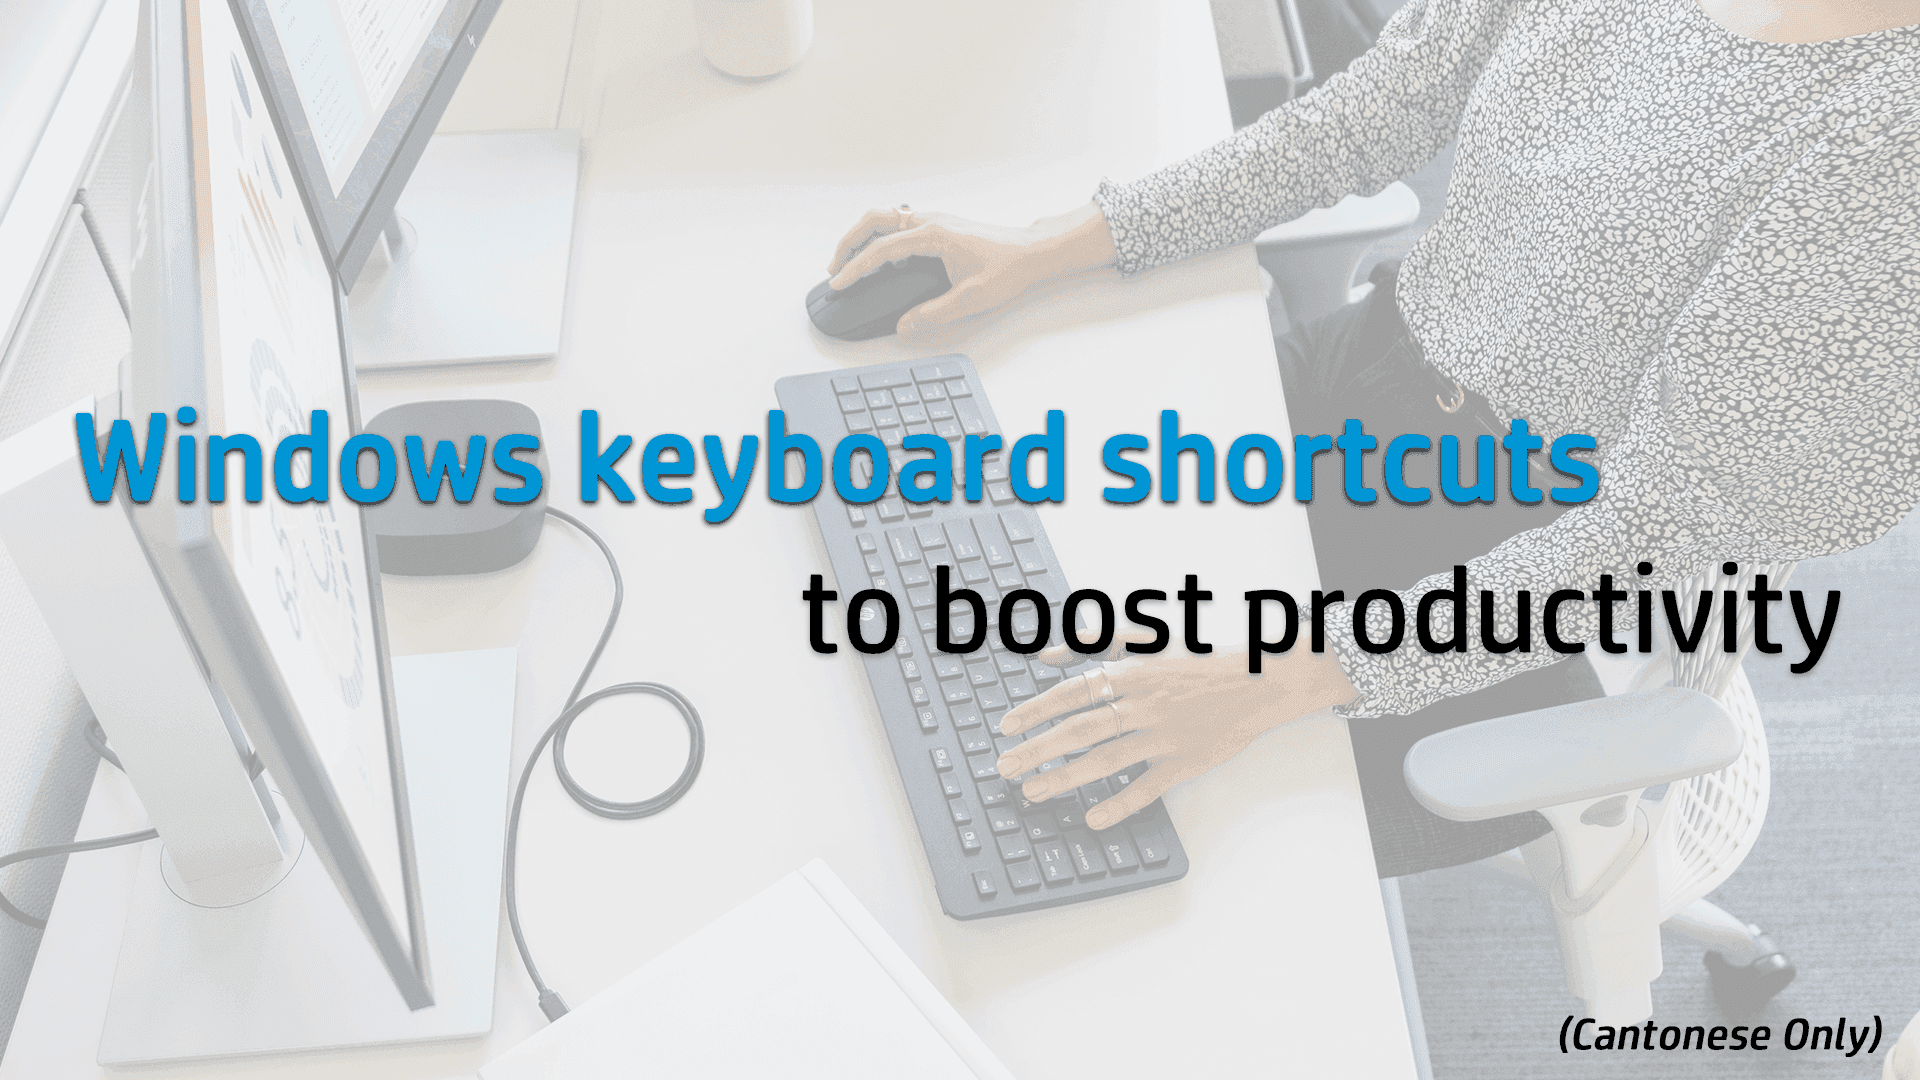 Windows keyboard shortcuts to boost productivity